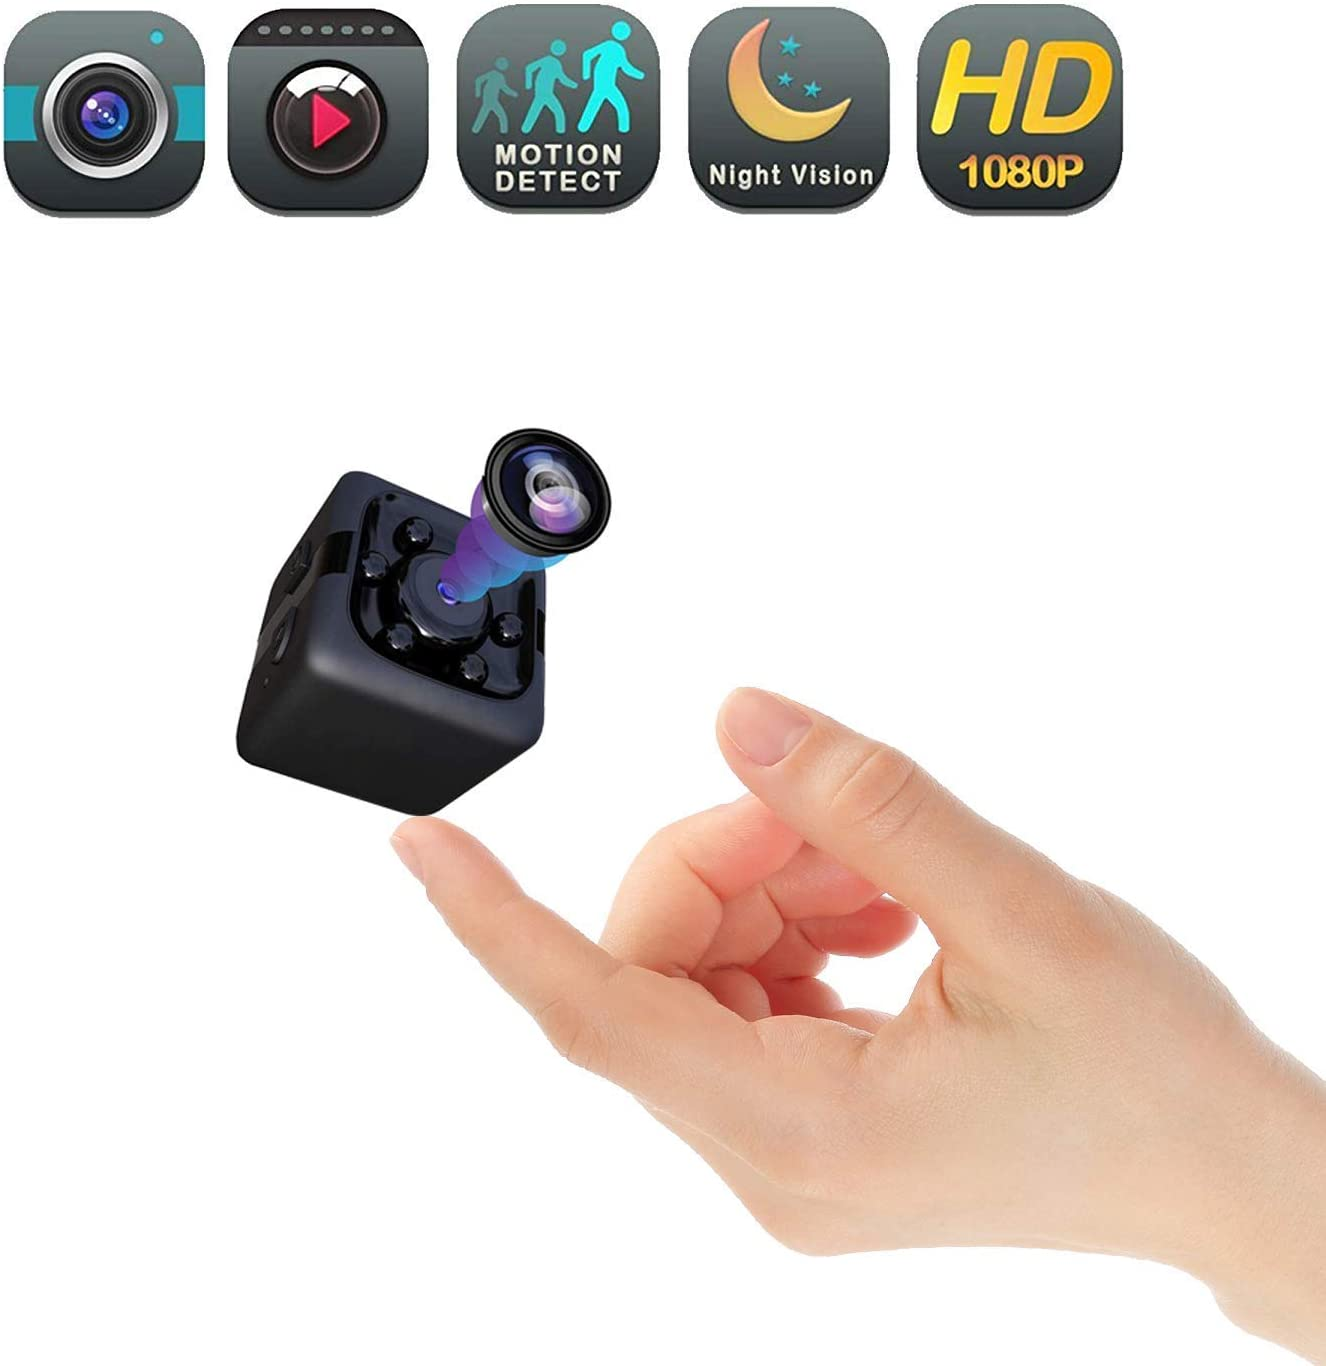 Mini Cam Wireless Covert Spy Camera Portable Full HD 1080P Babysitter Cam with Night Vision Video Sound Recording Home Car Drone Office Outdoor Animal Dynamics Detection